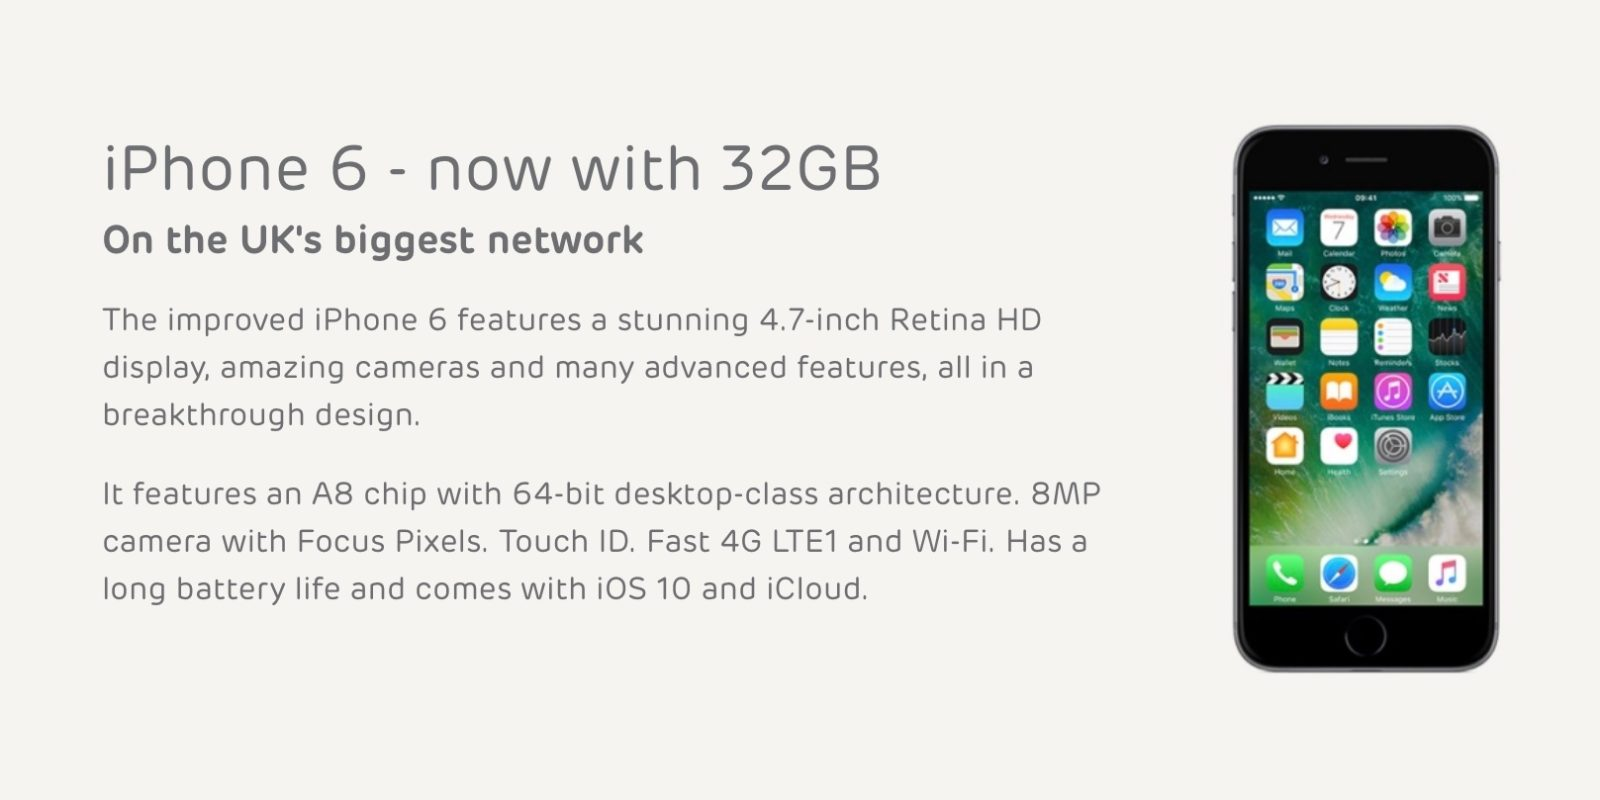 fdb500d6284 Apple s re-launched 32 GB iPhone 6 now on sale in the UK - 9to5Mac